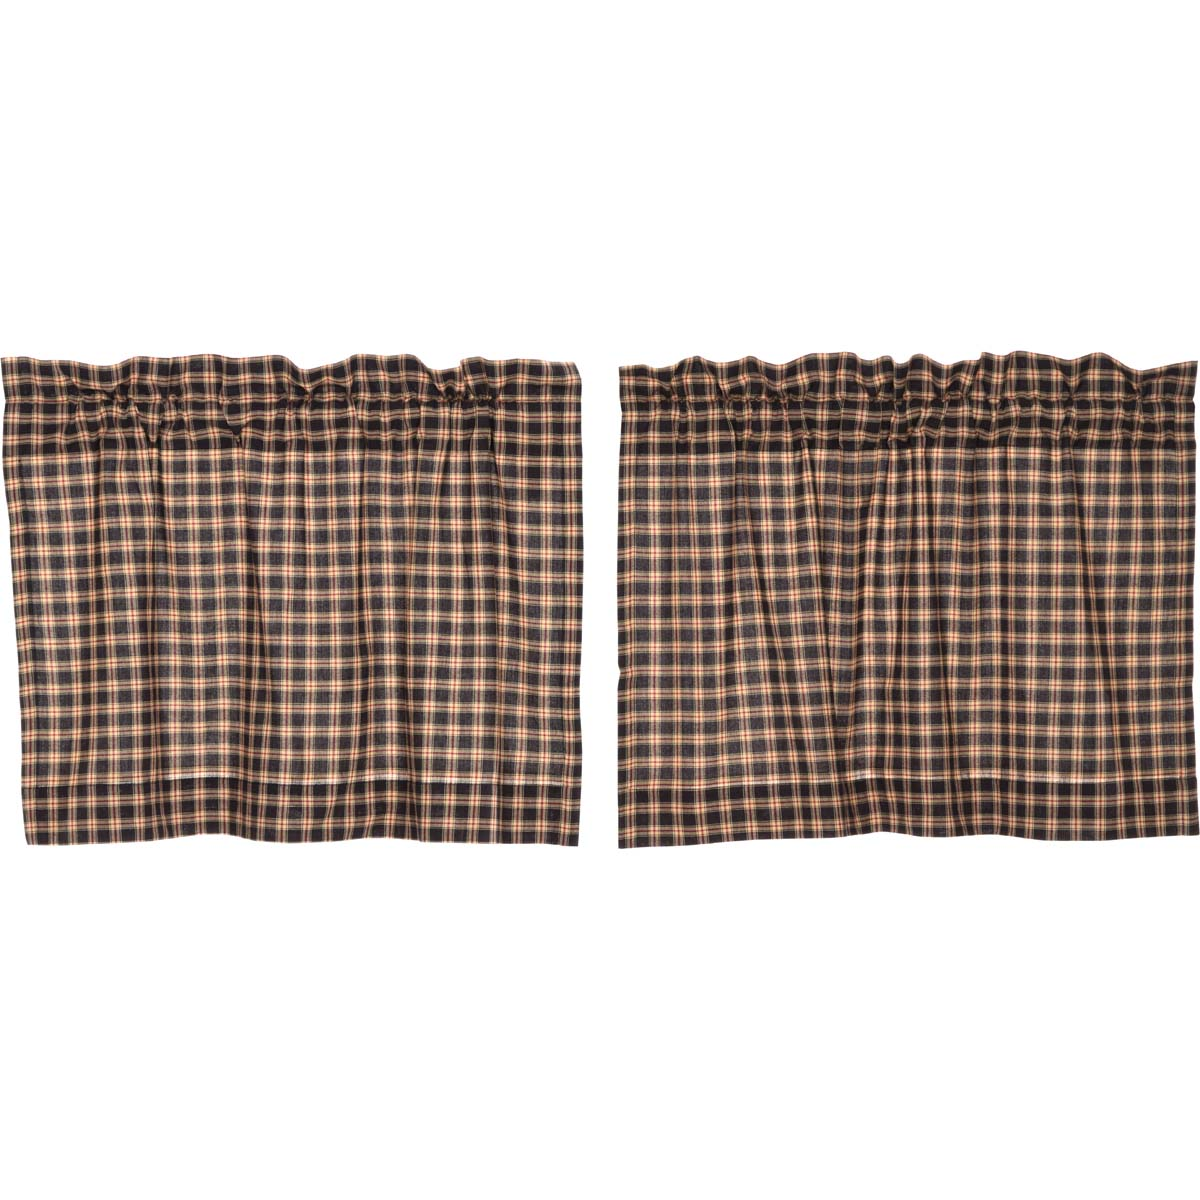 Bingham Star Tier Plaid Set of 2 L24xW36 - Woodrol